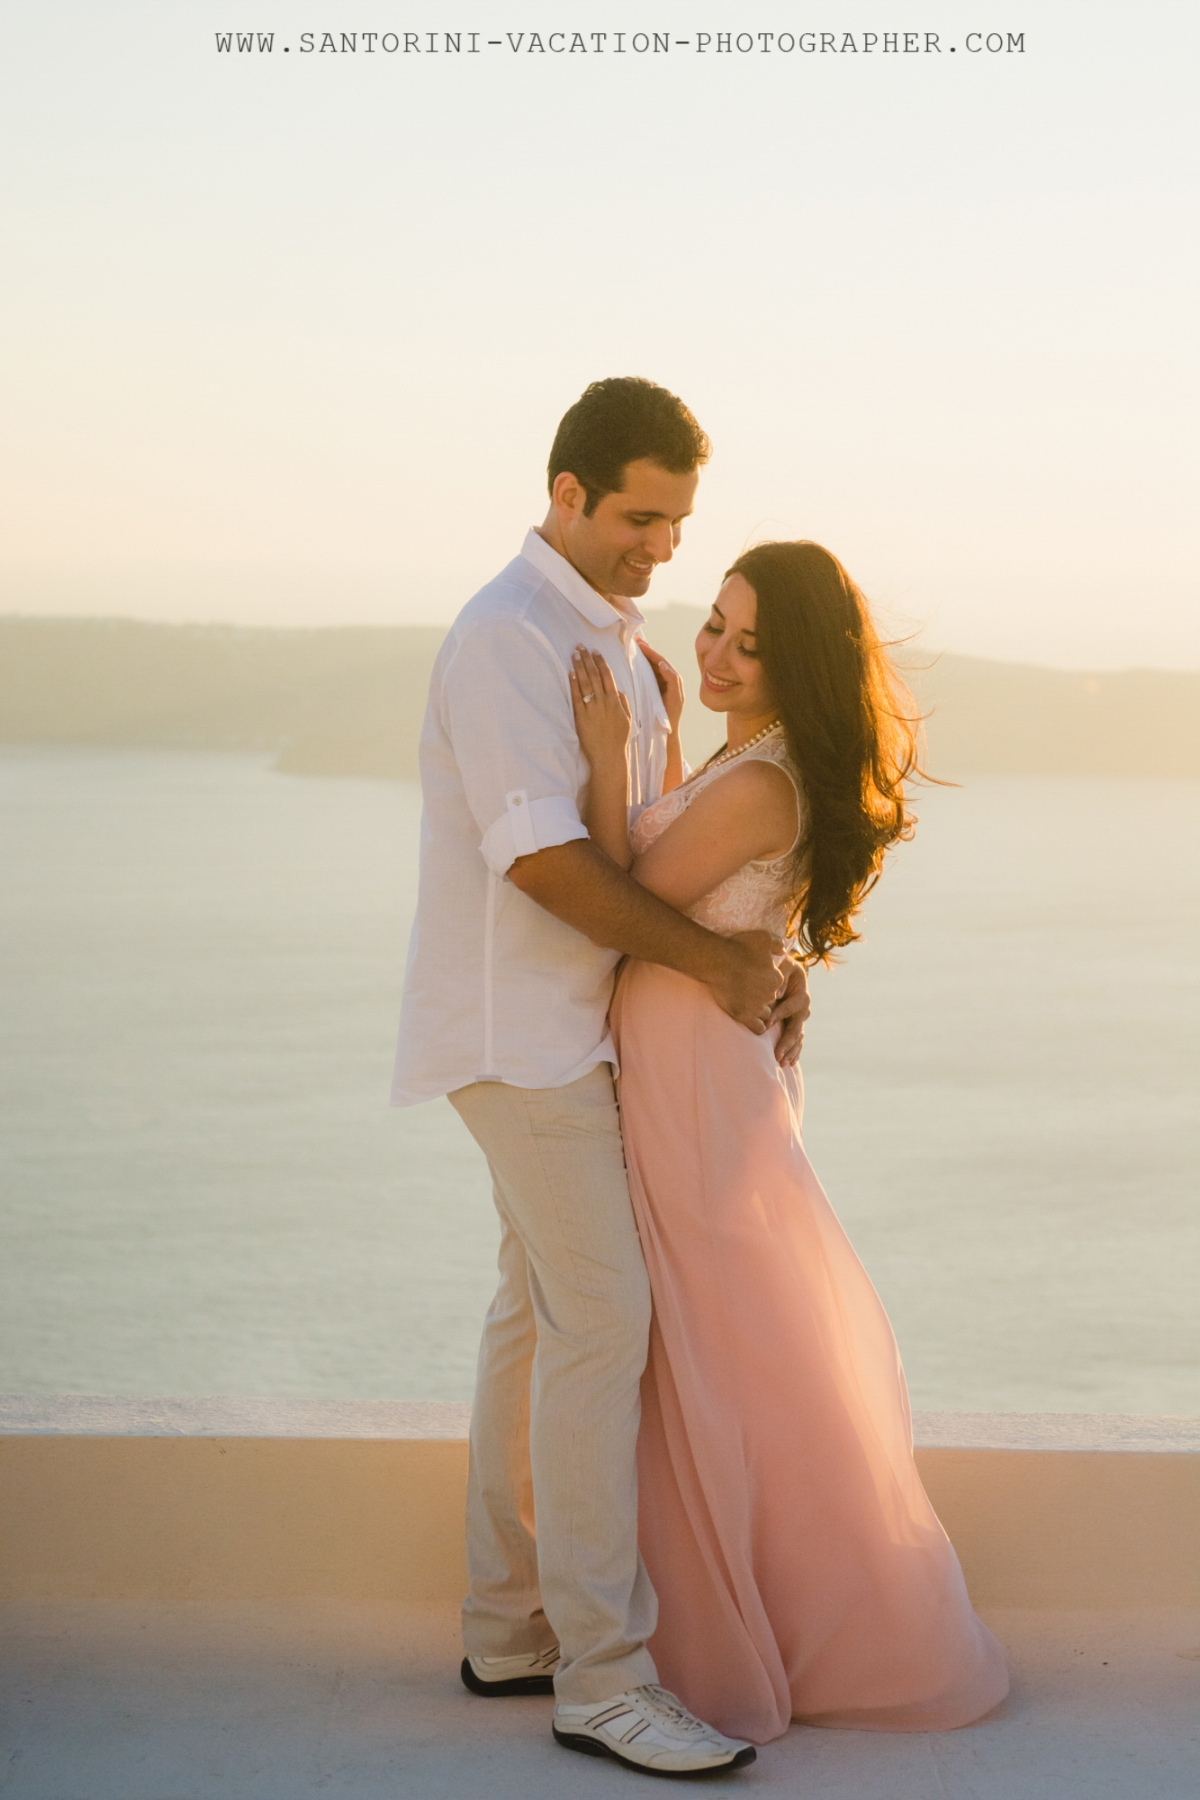 Santorini-photographer-Anna-Sulte-post-wedding-session-001